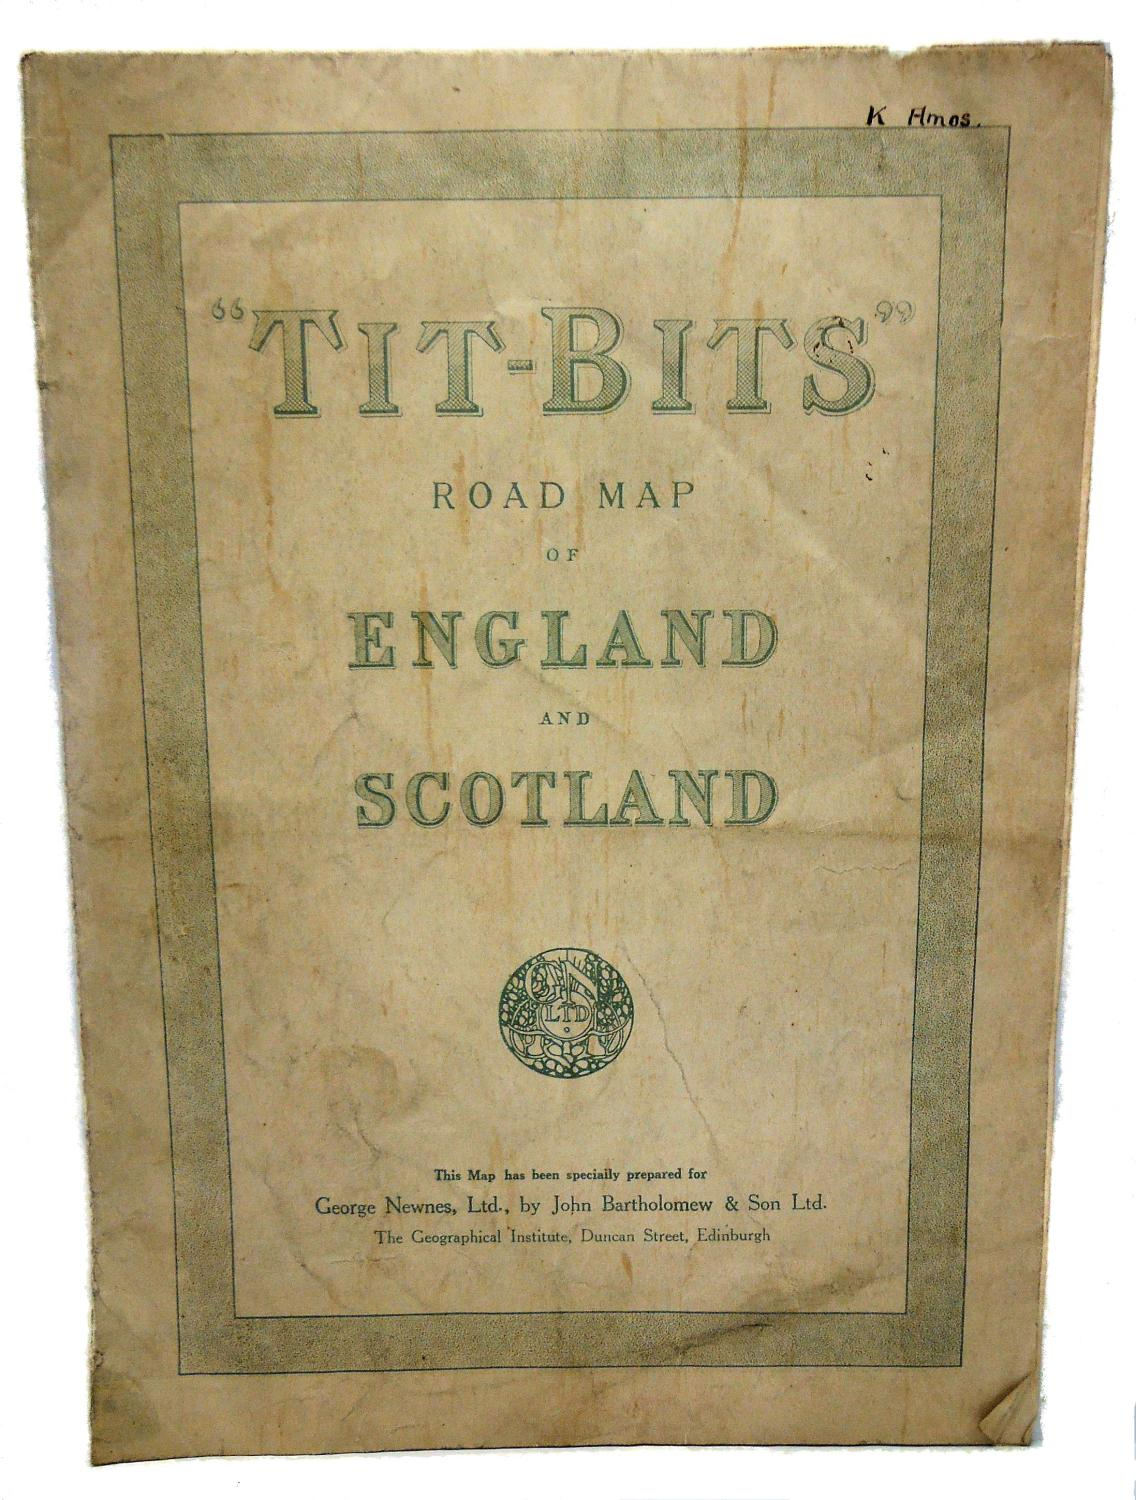 Road Map Of England And Scotland.Tit Bits Road Map Of England And Scotland By George Newnes Ltd